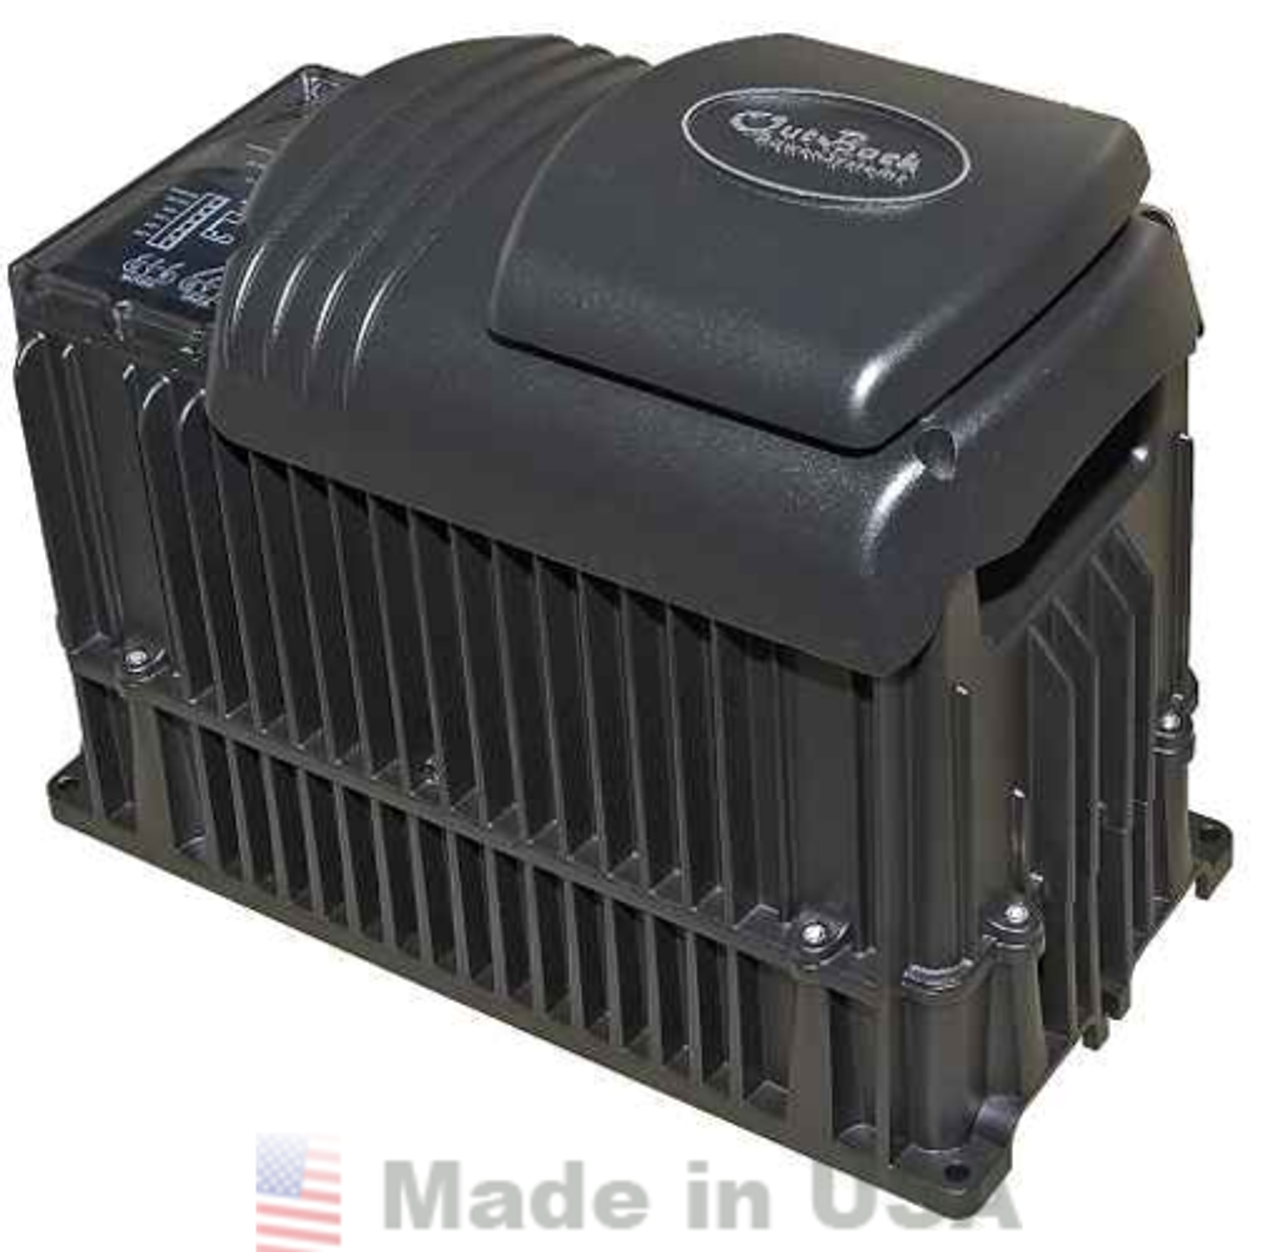 Outback Power Off Grid Inverter Charger 2000 Watt 12 VDC FX2012T